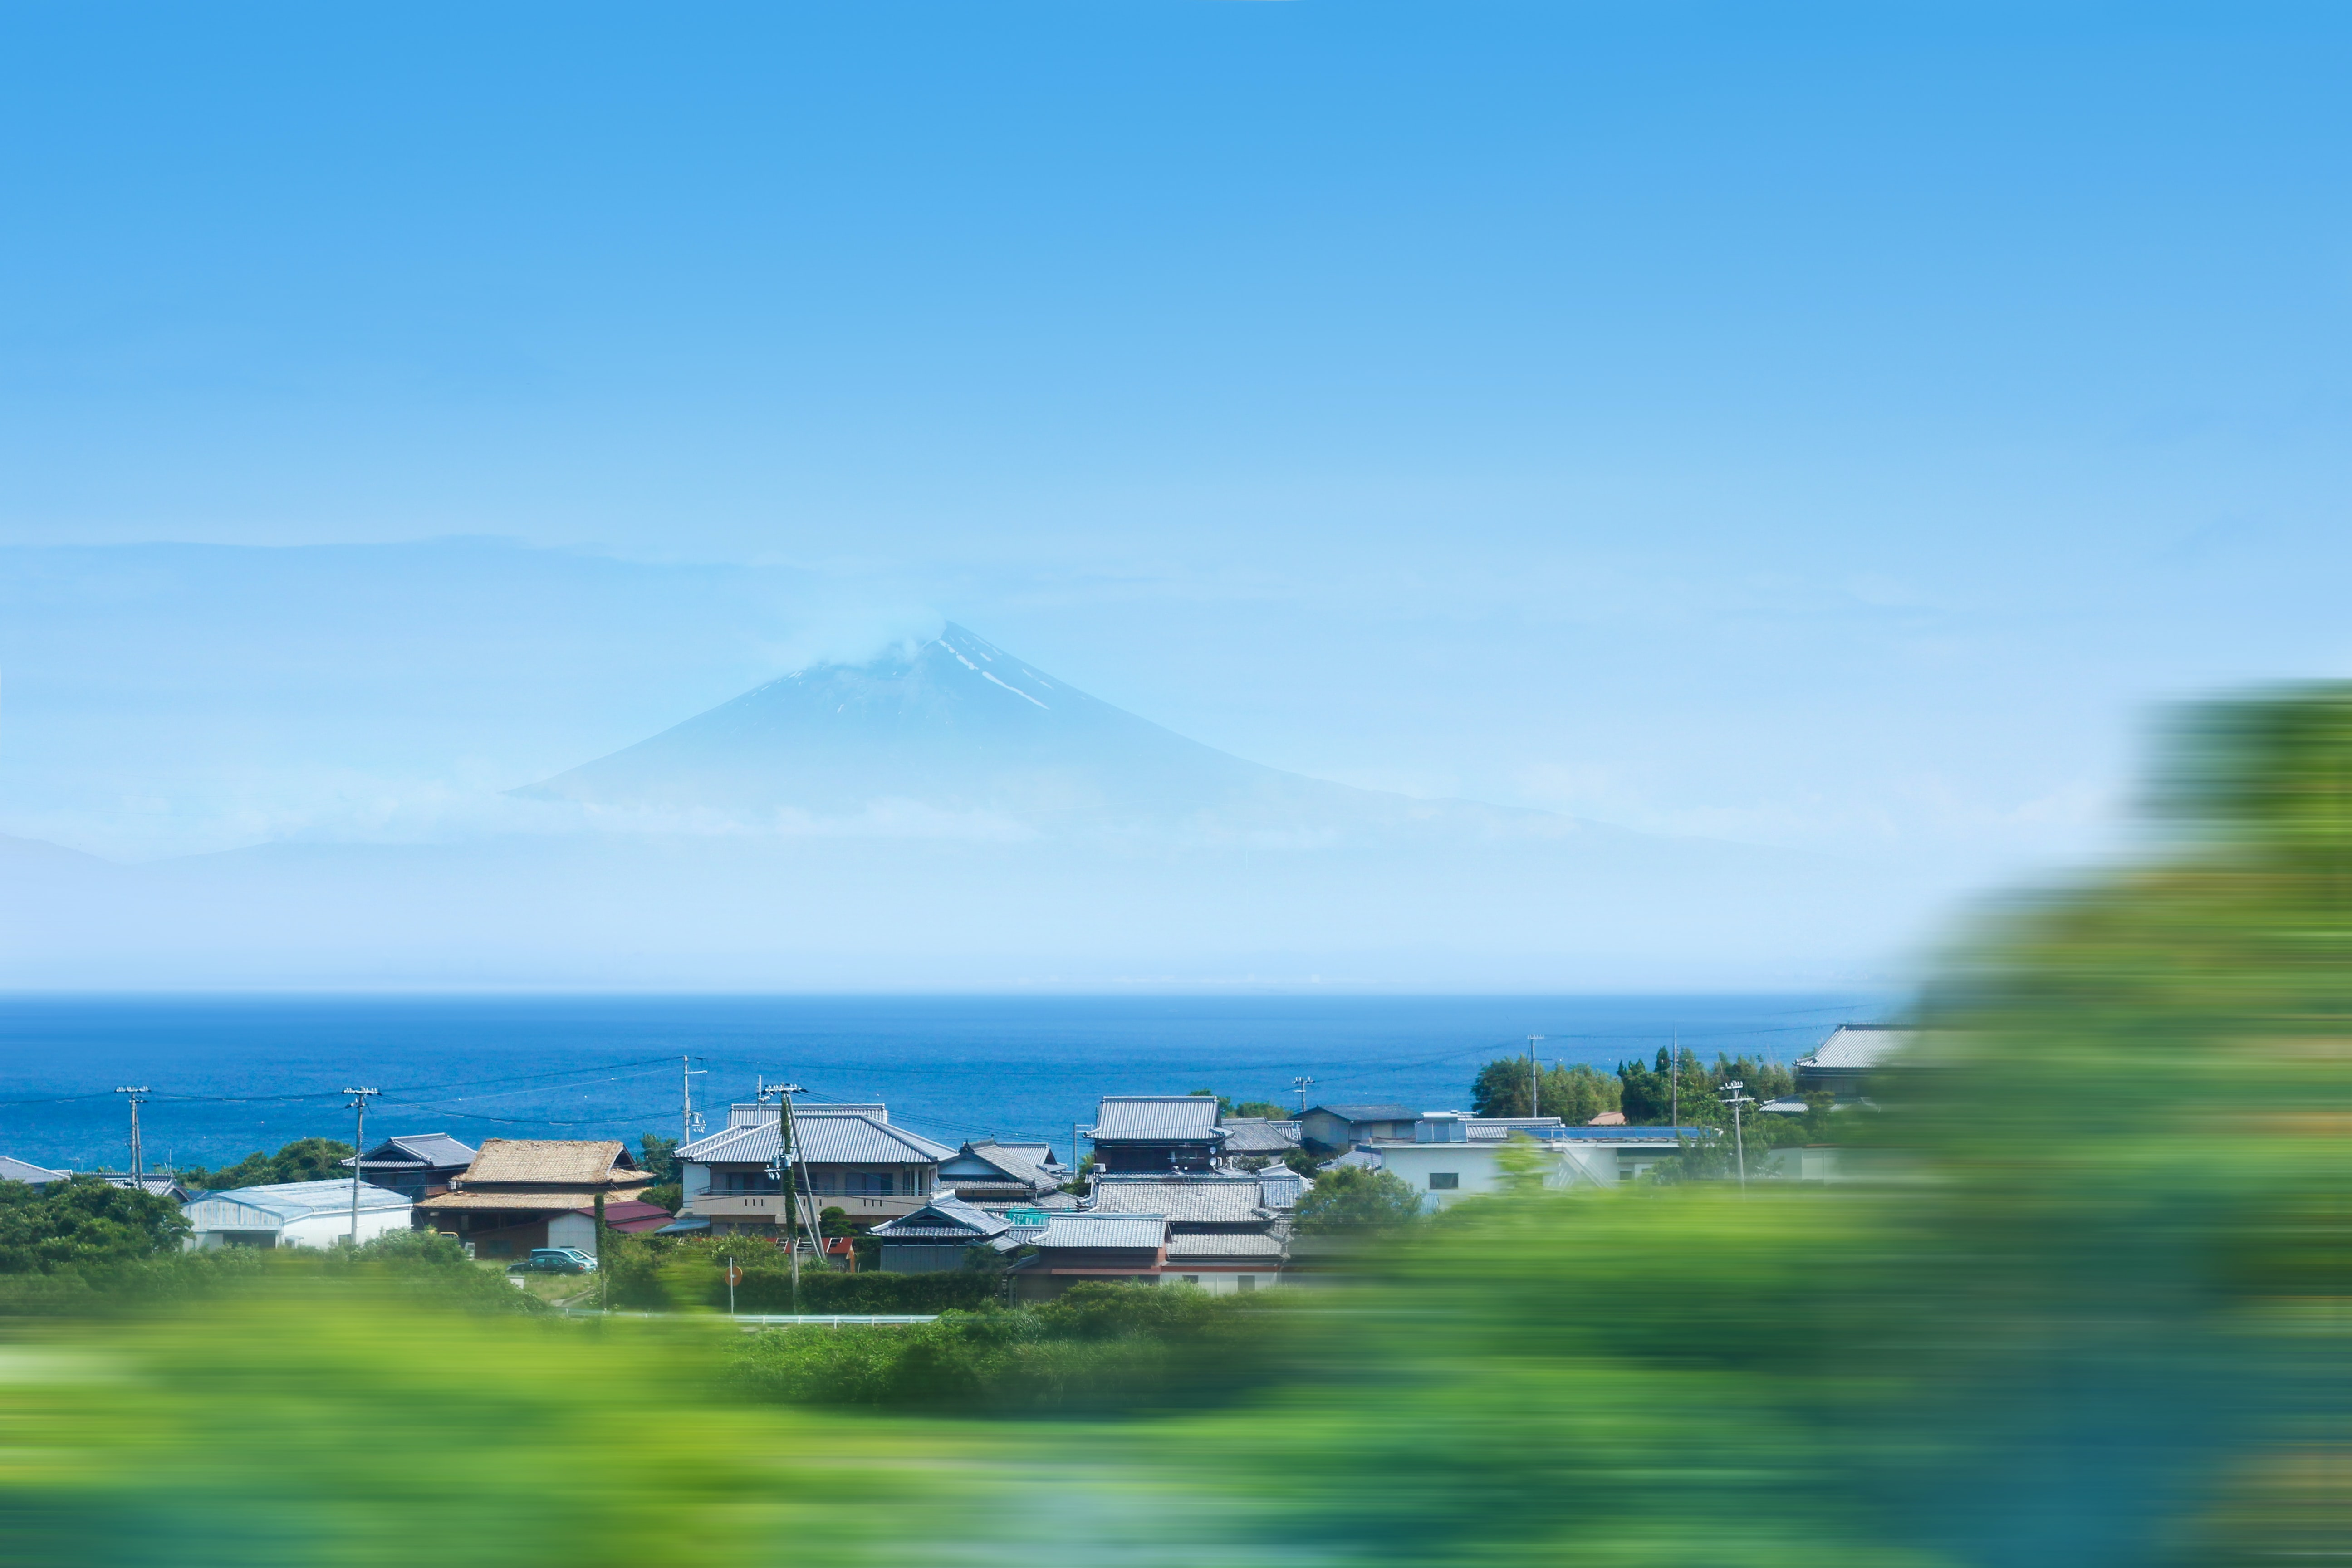 timelapse photo of house near ocean across Mt. Fuji